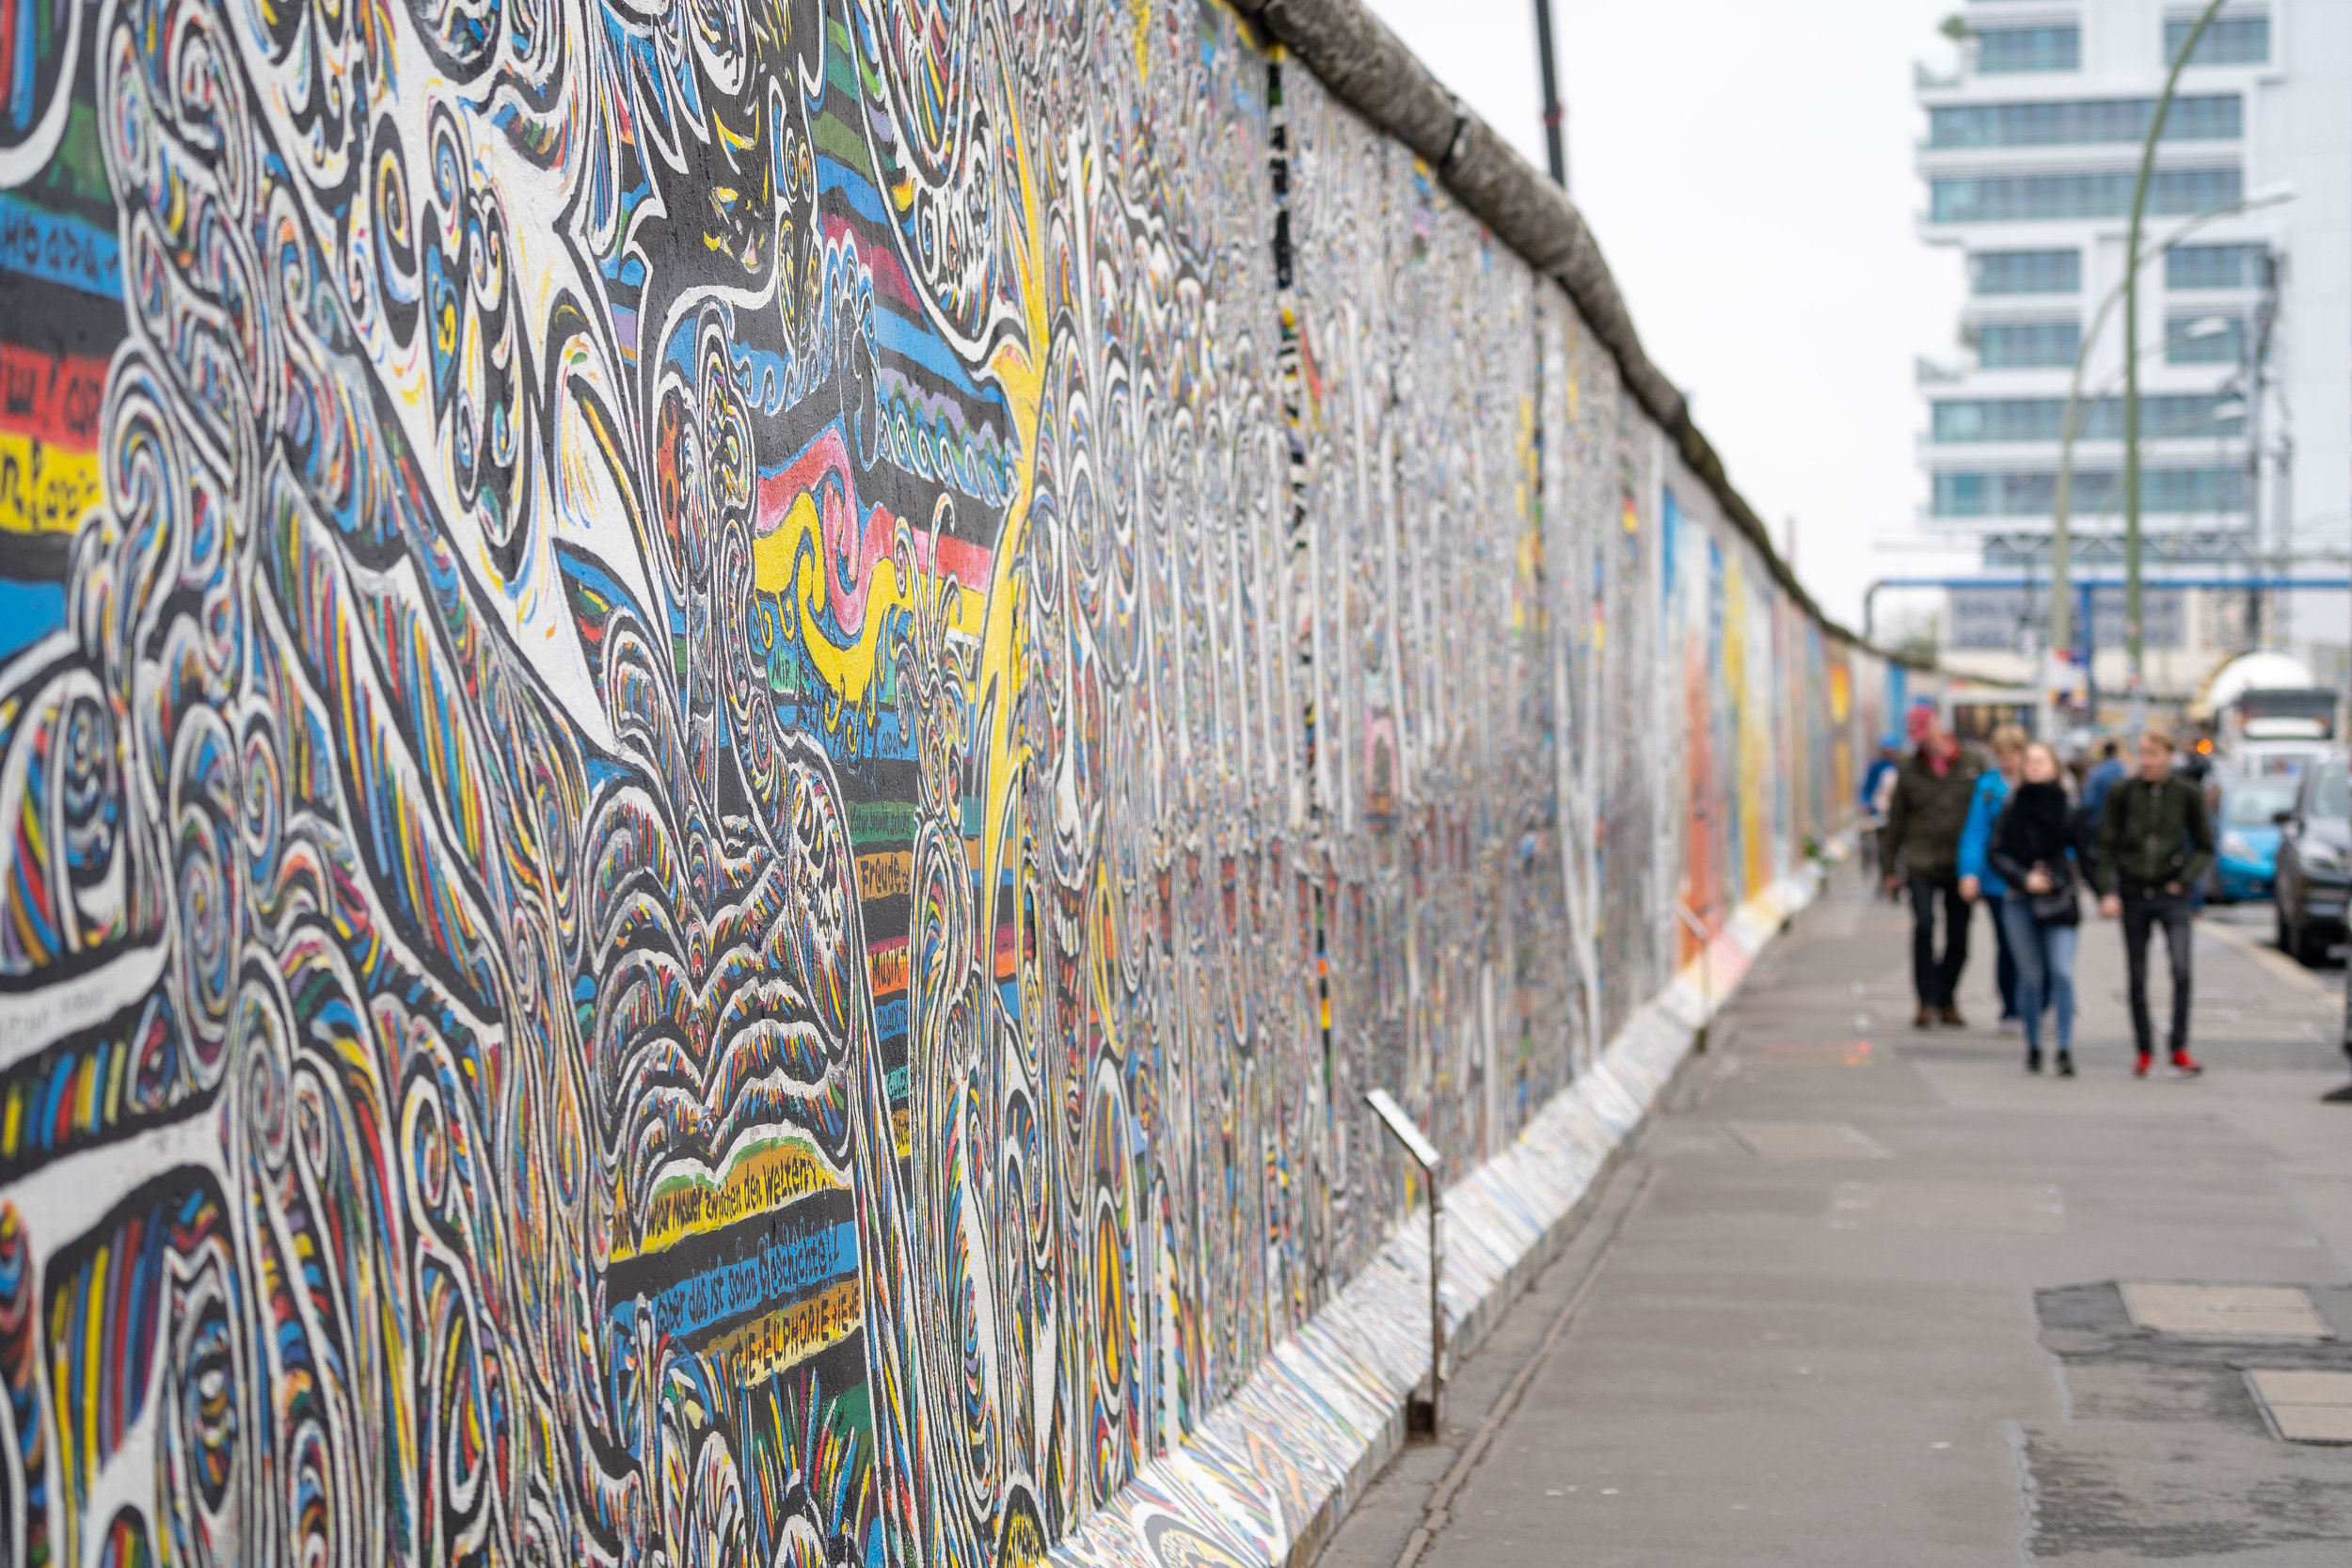 Section of the East Side Gallery